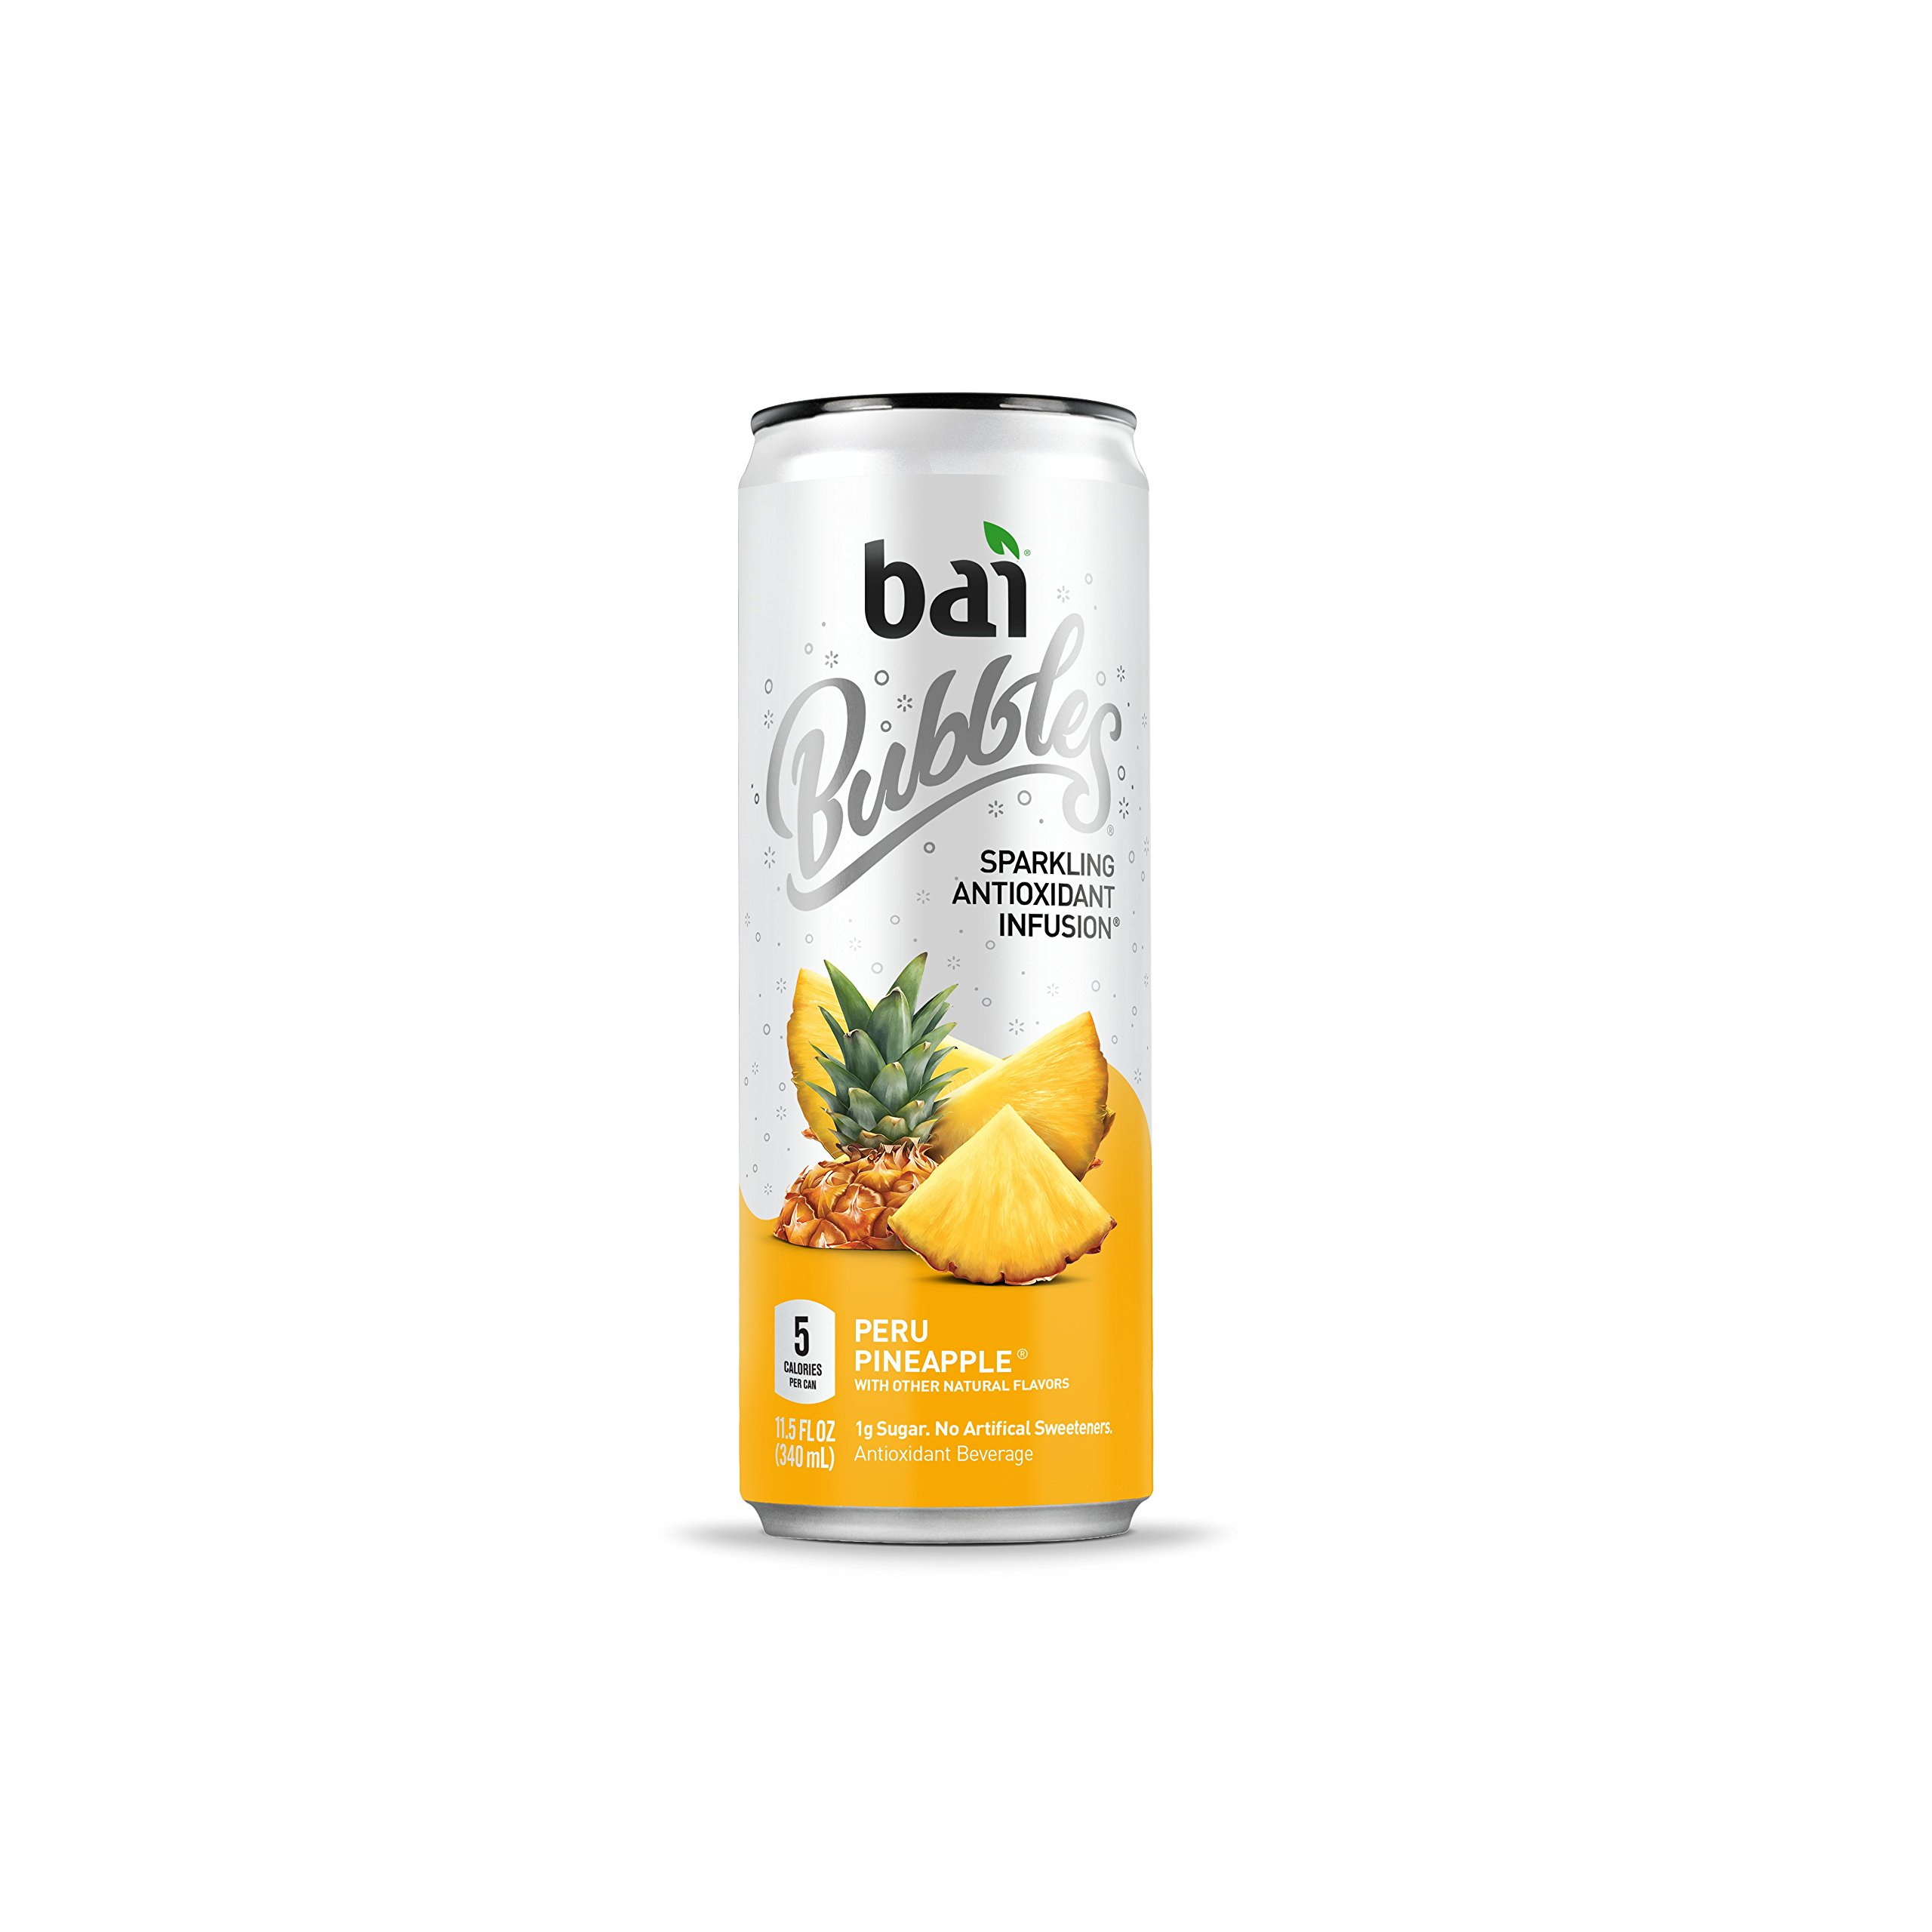 Bai Bubbles Peru Pineapple, Antioxidant Infused, Sparkling Water Drinks, 11.5 Fluid Ounce Cans, 12 count (Packaging May Vary)